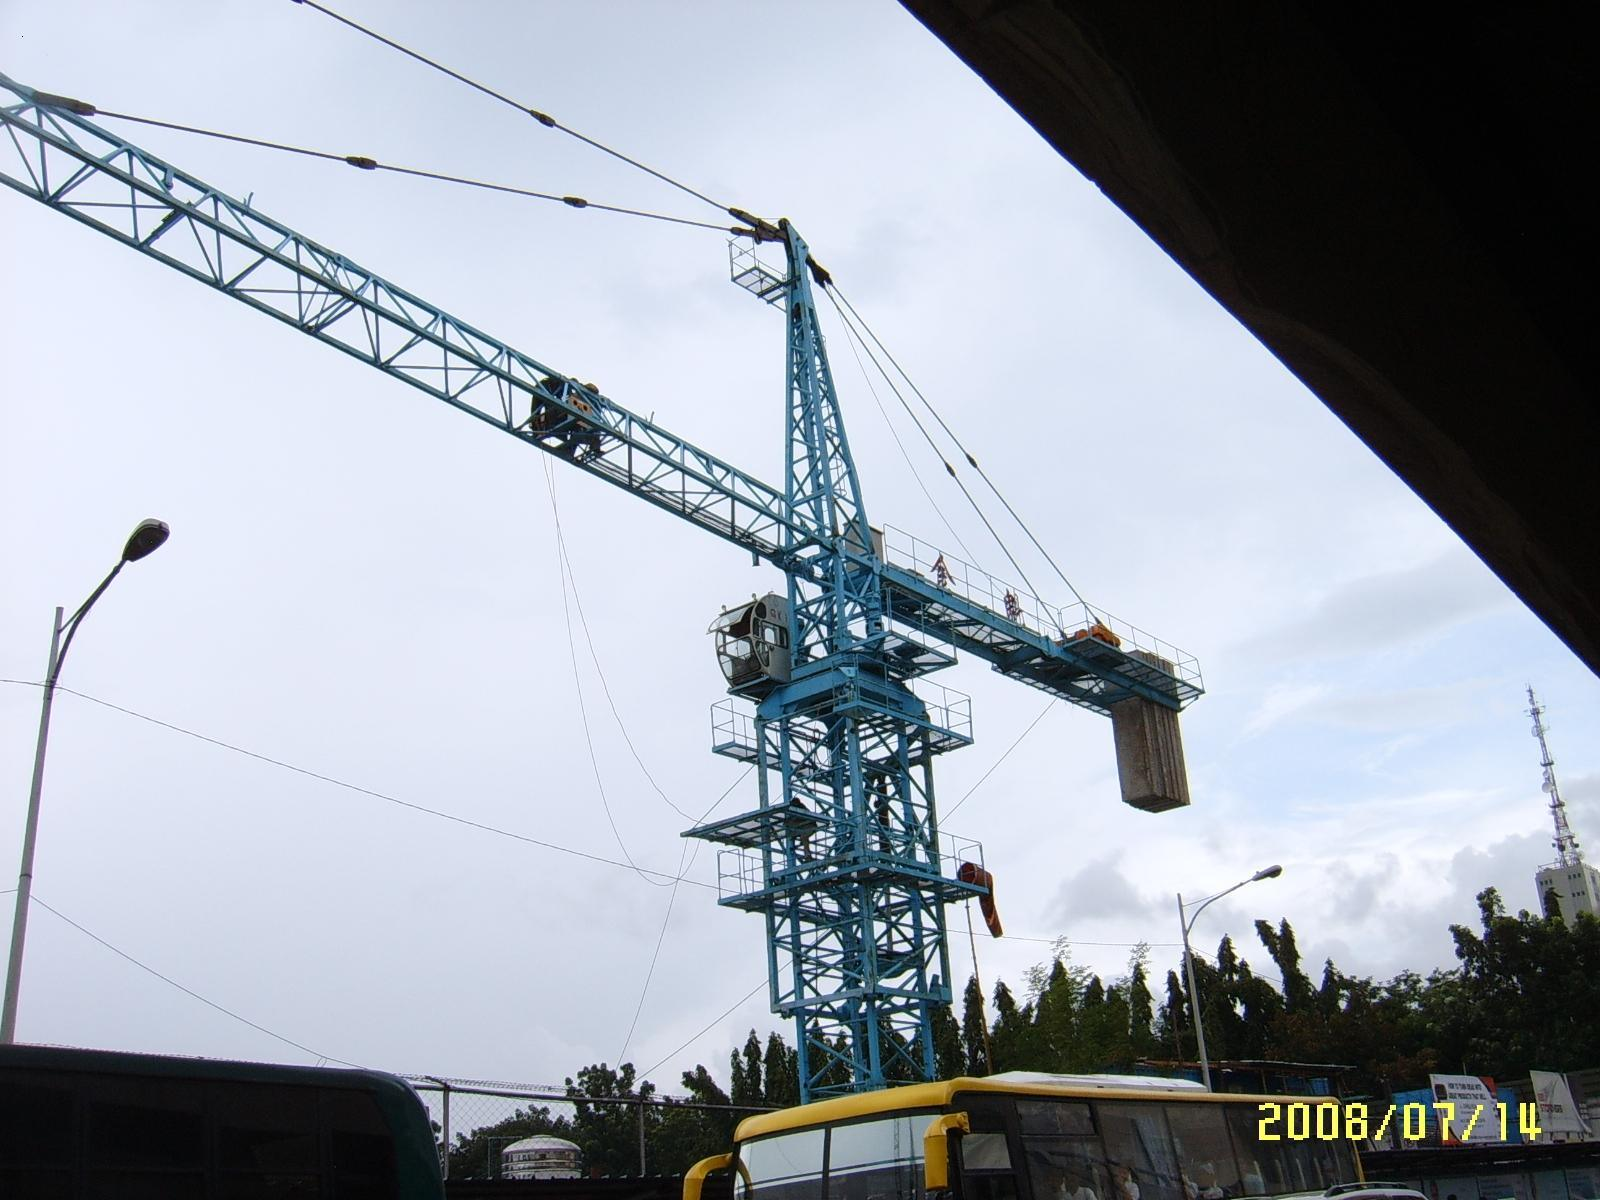 Tower Crane Productivity : The information is not available right now